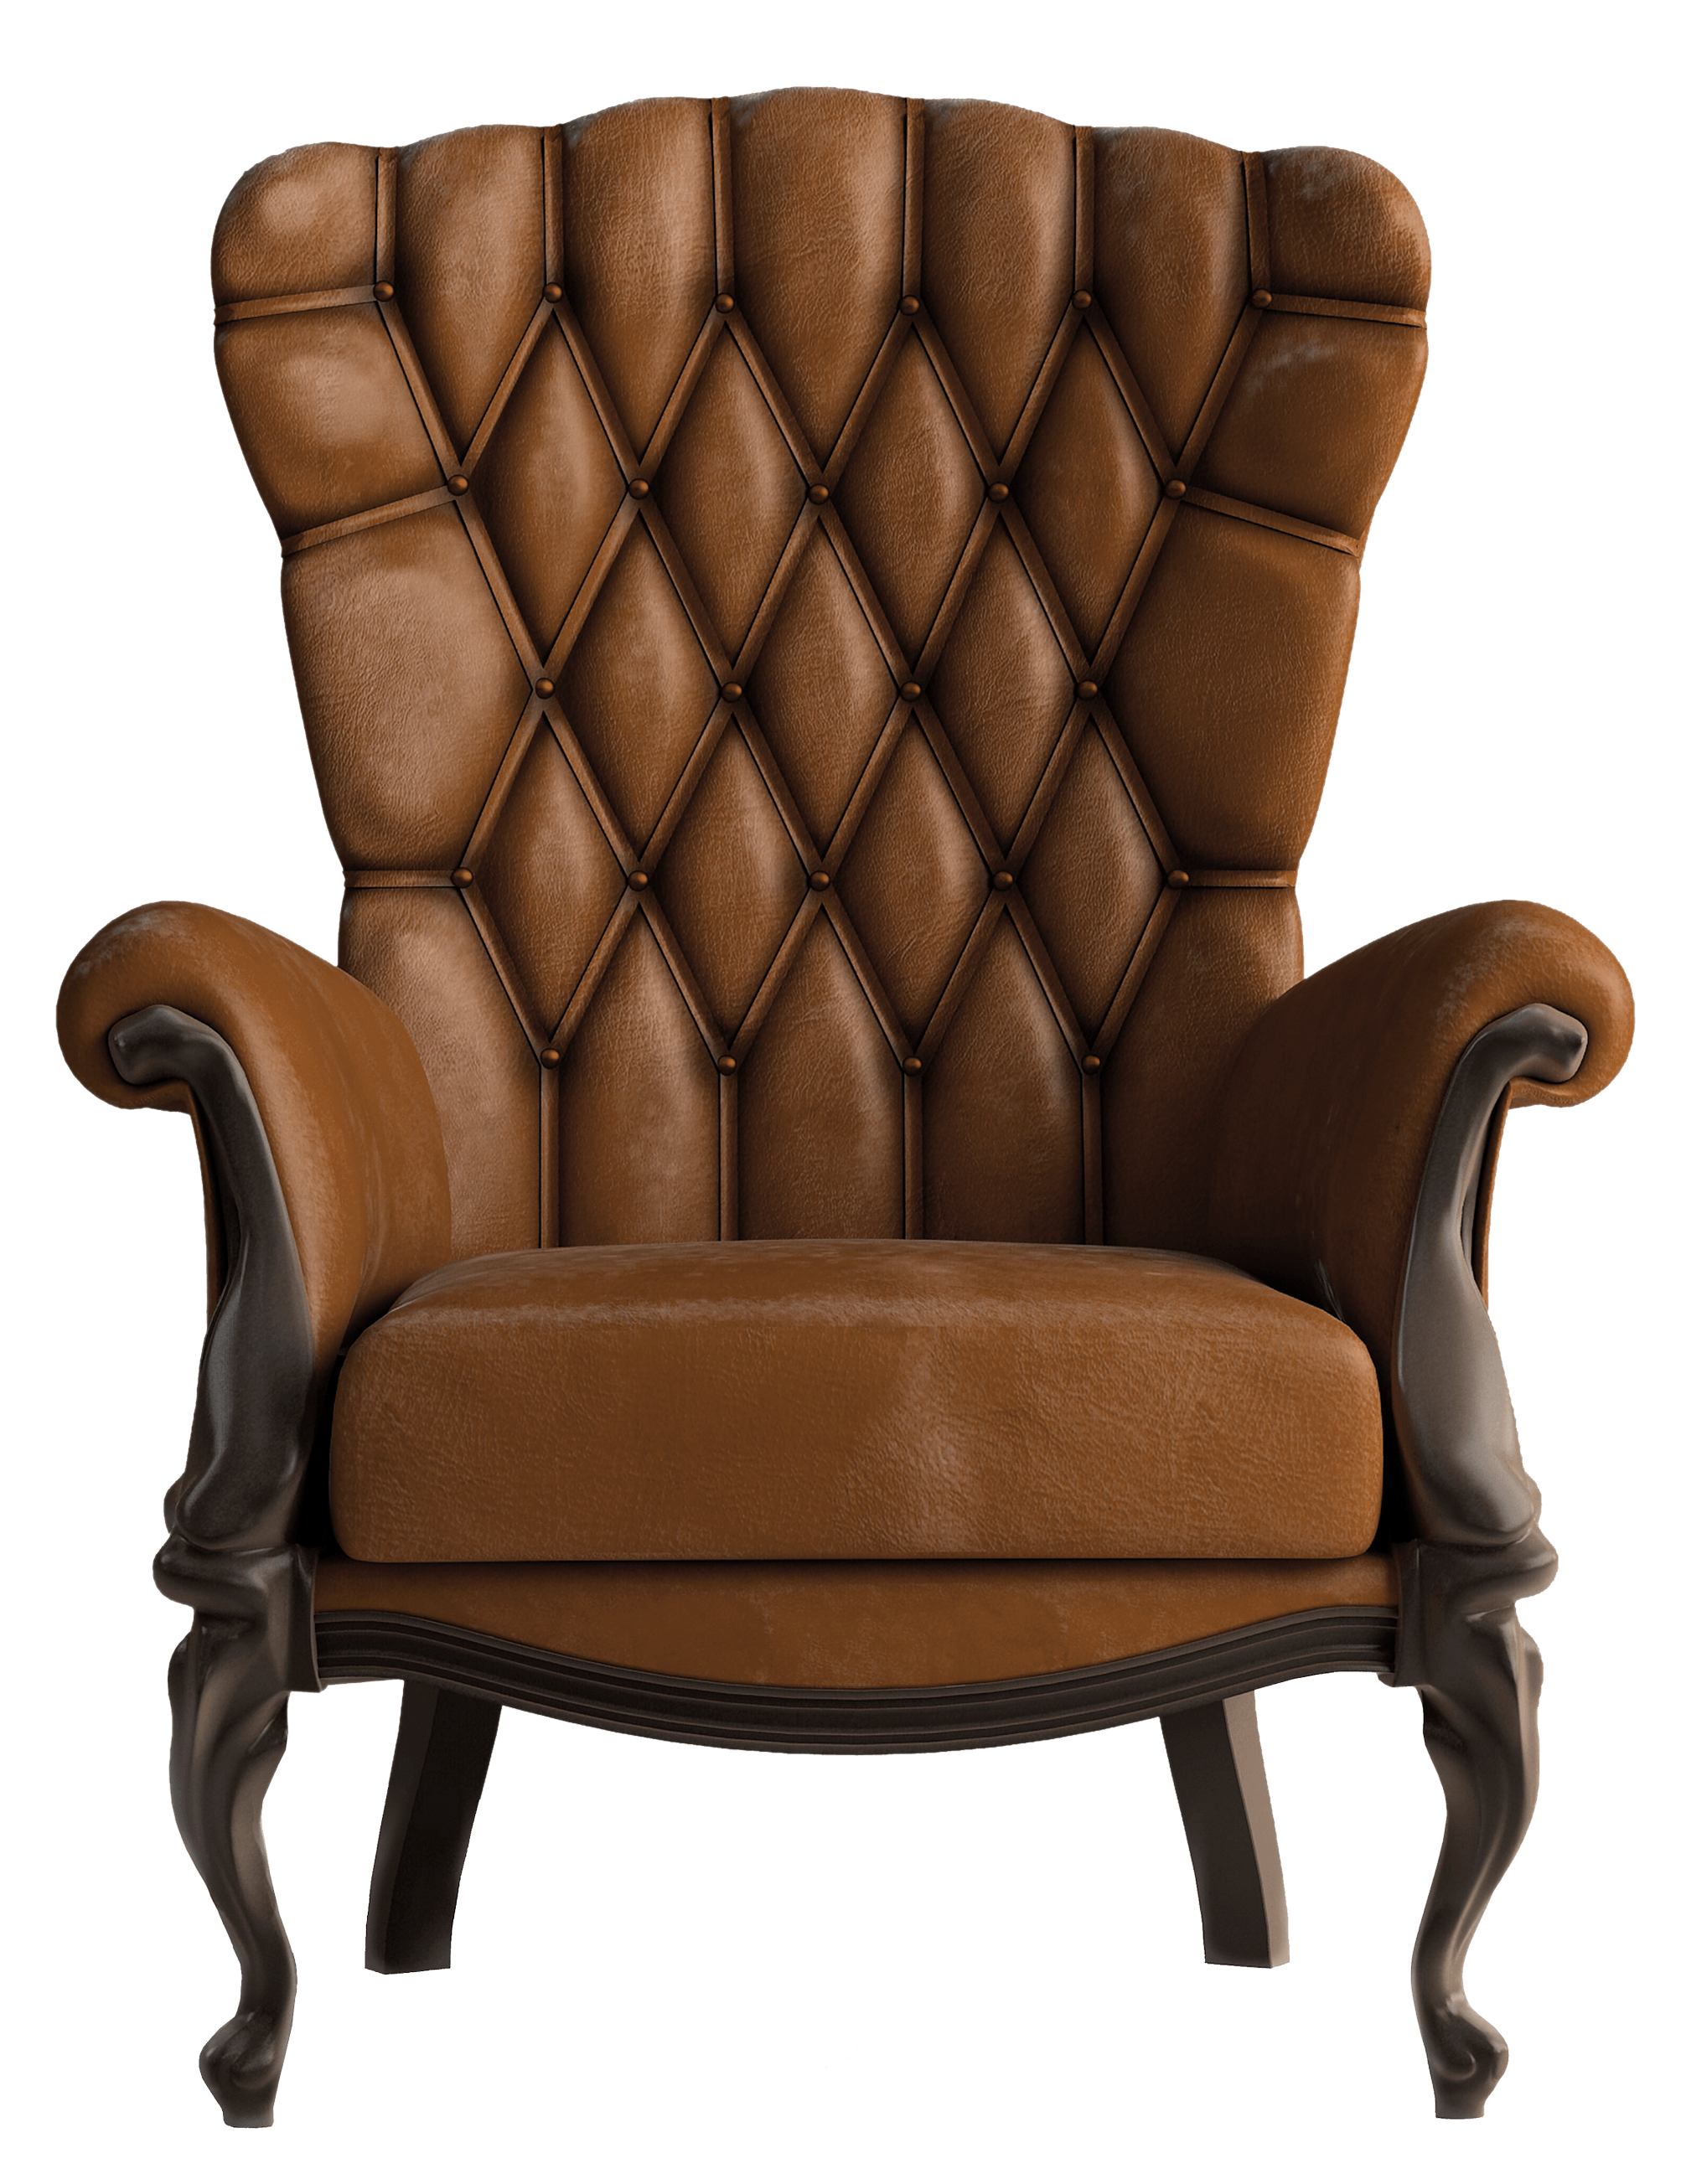 Couch clipart leather sofa. Image result for png